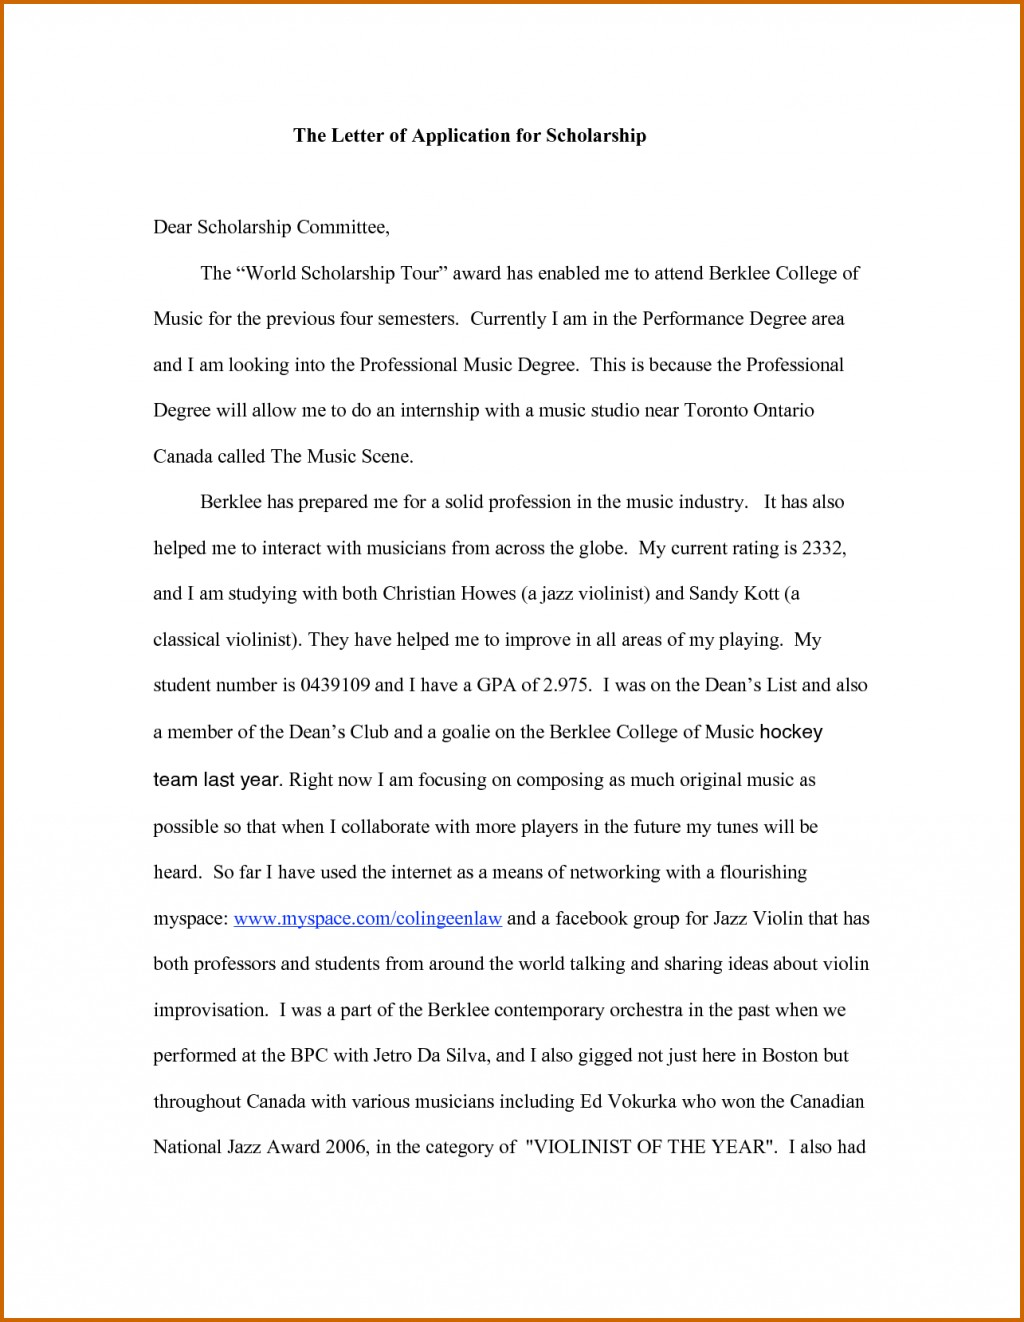 005 How To Write Application For Scholarship An Essay Top A Personal Statement Scholarships Autobiographical About Yourself Large